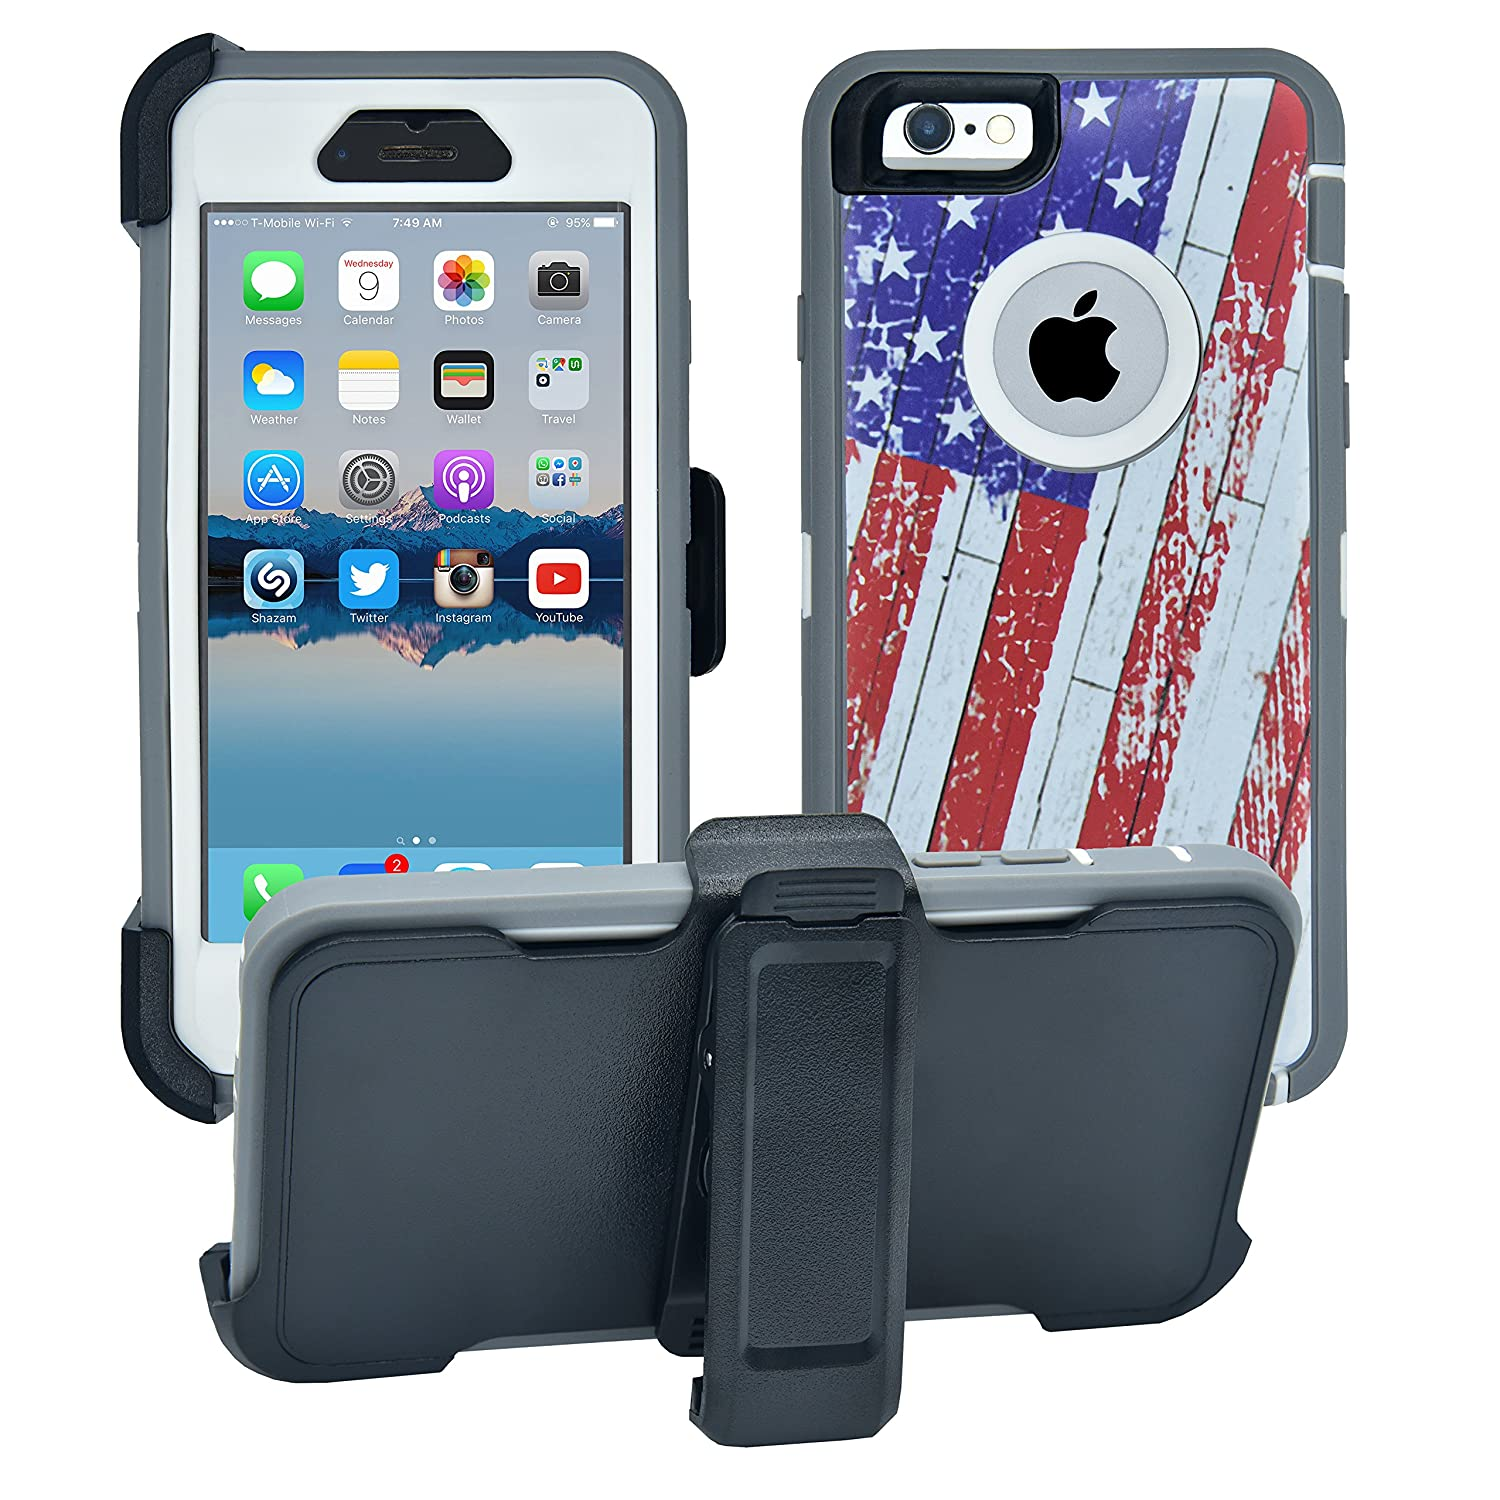 AlphaCell Cover compatible with iPhone 6/6S (NOT Plus) | 2-in-1 Screen Protector & Holster Case | Full Body Military Grade Protection with Carrying Belt Clip | Protective Drop-proof Shock-proof